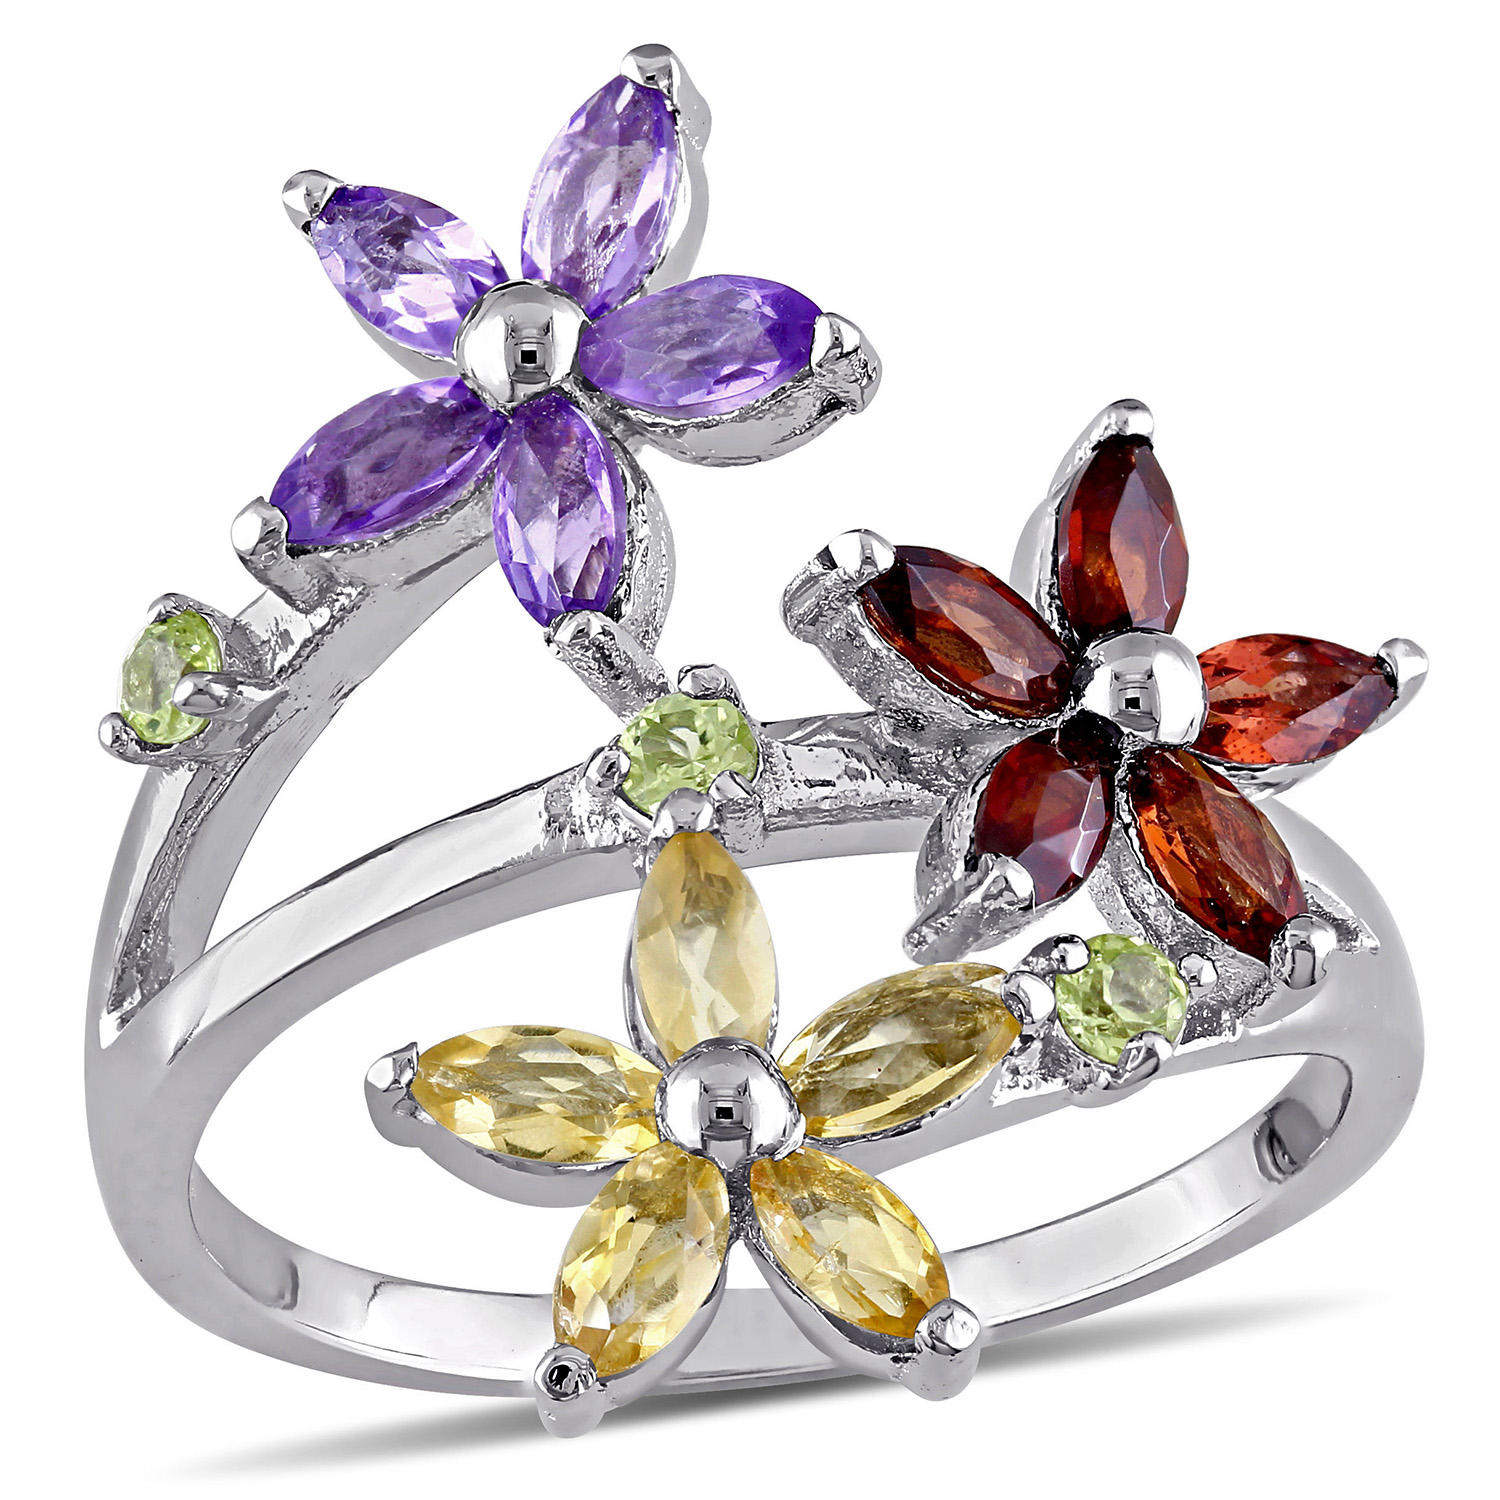 1.6 CT. T.G.W. Garnet, Citrine, Amethyst and Peridot Floral Ring in Sterling Silver